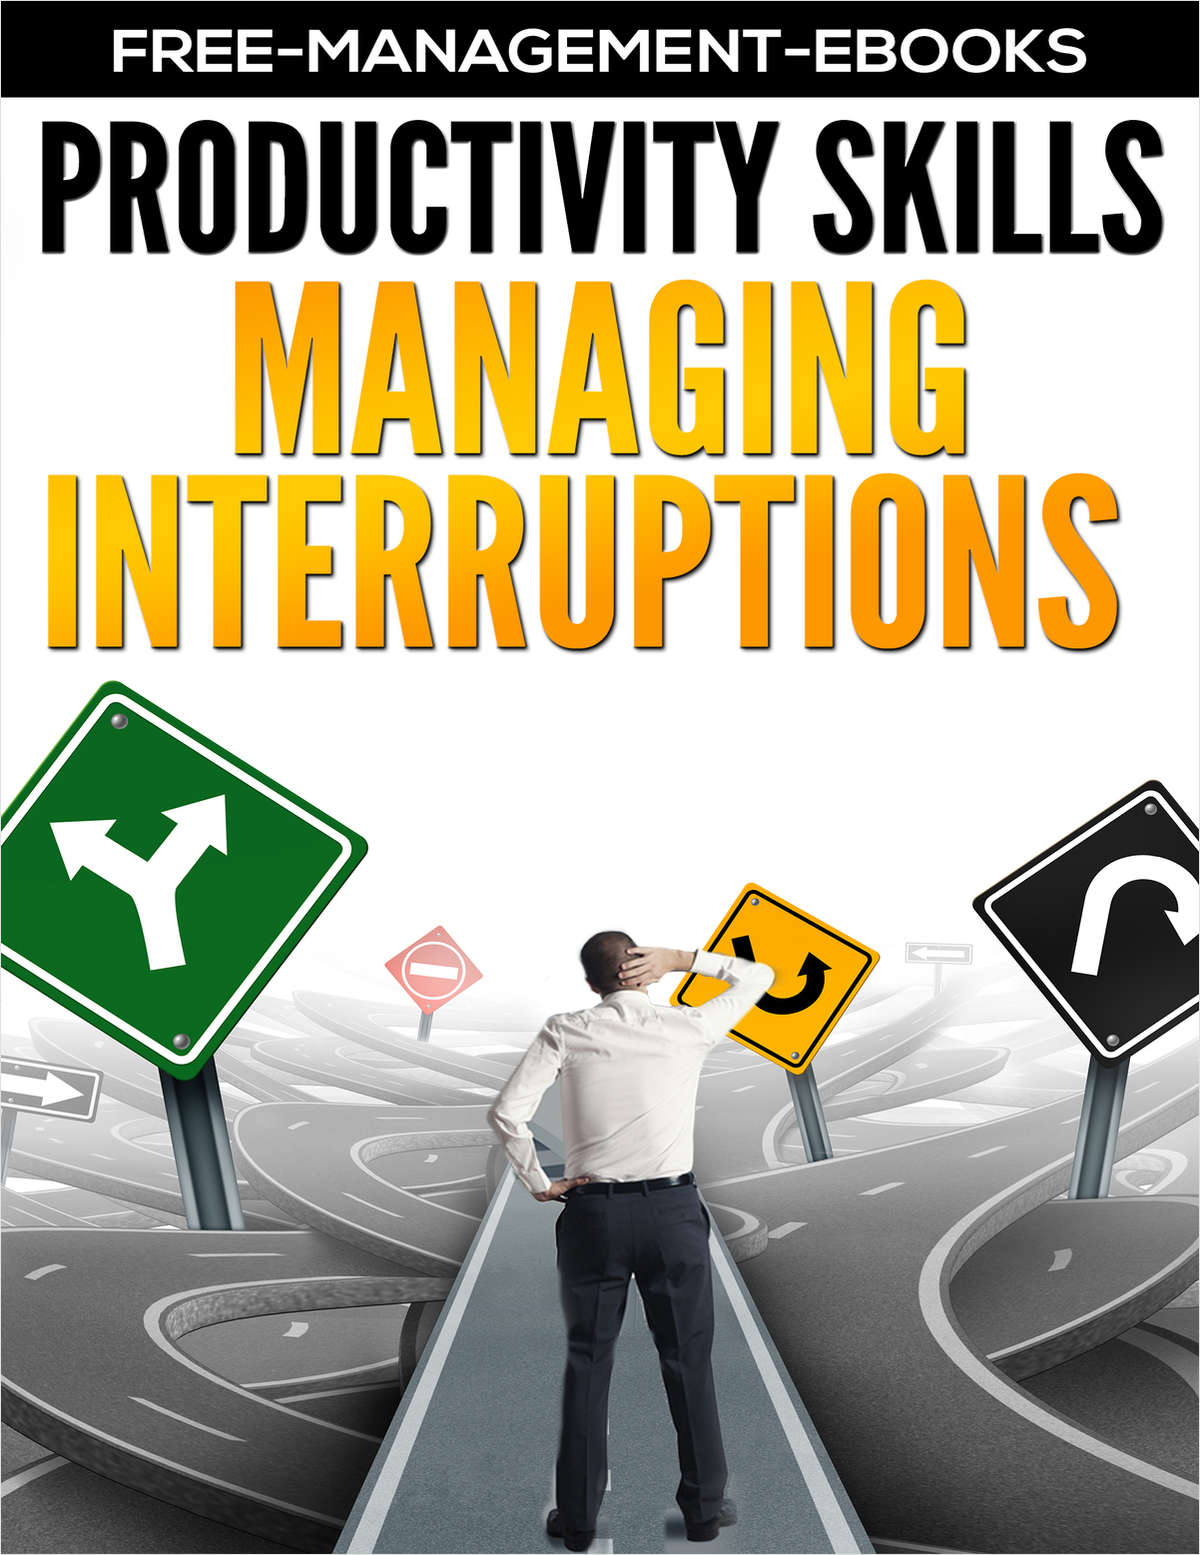 Managing Interruptions -- Developing Your Productivity Skills